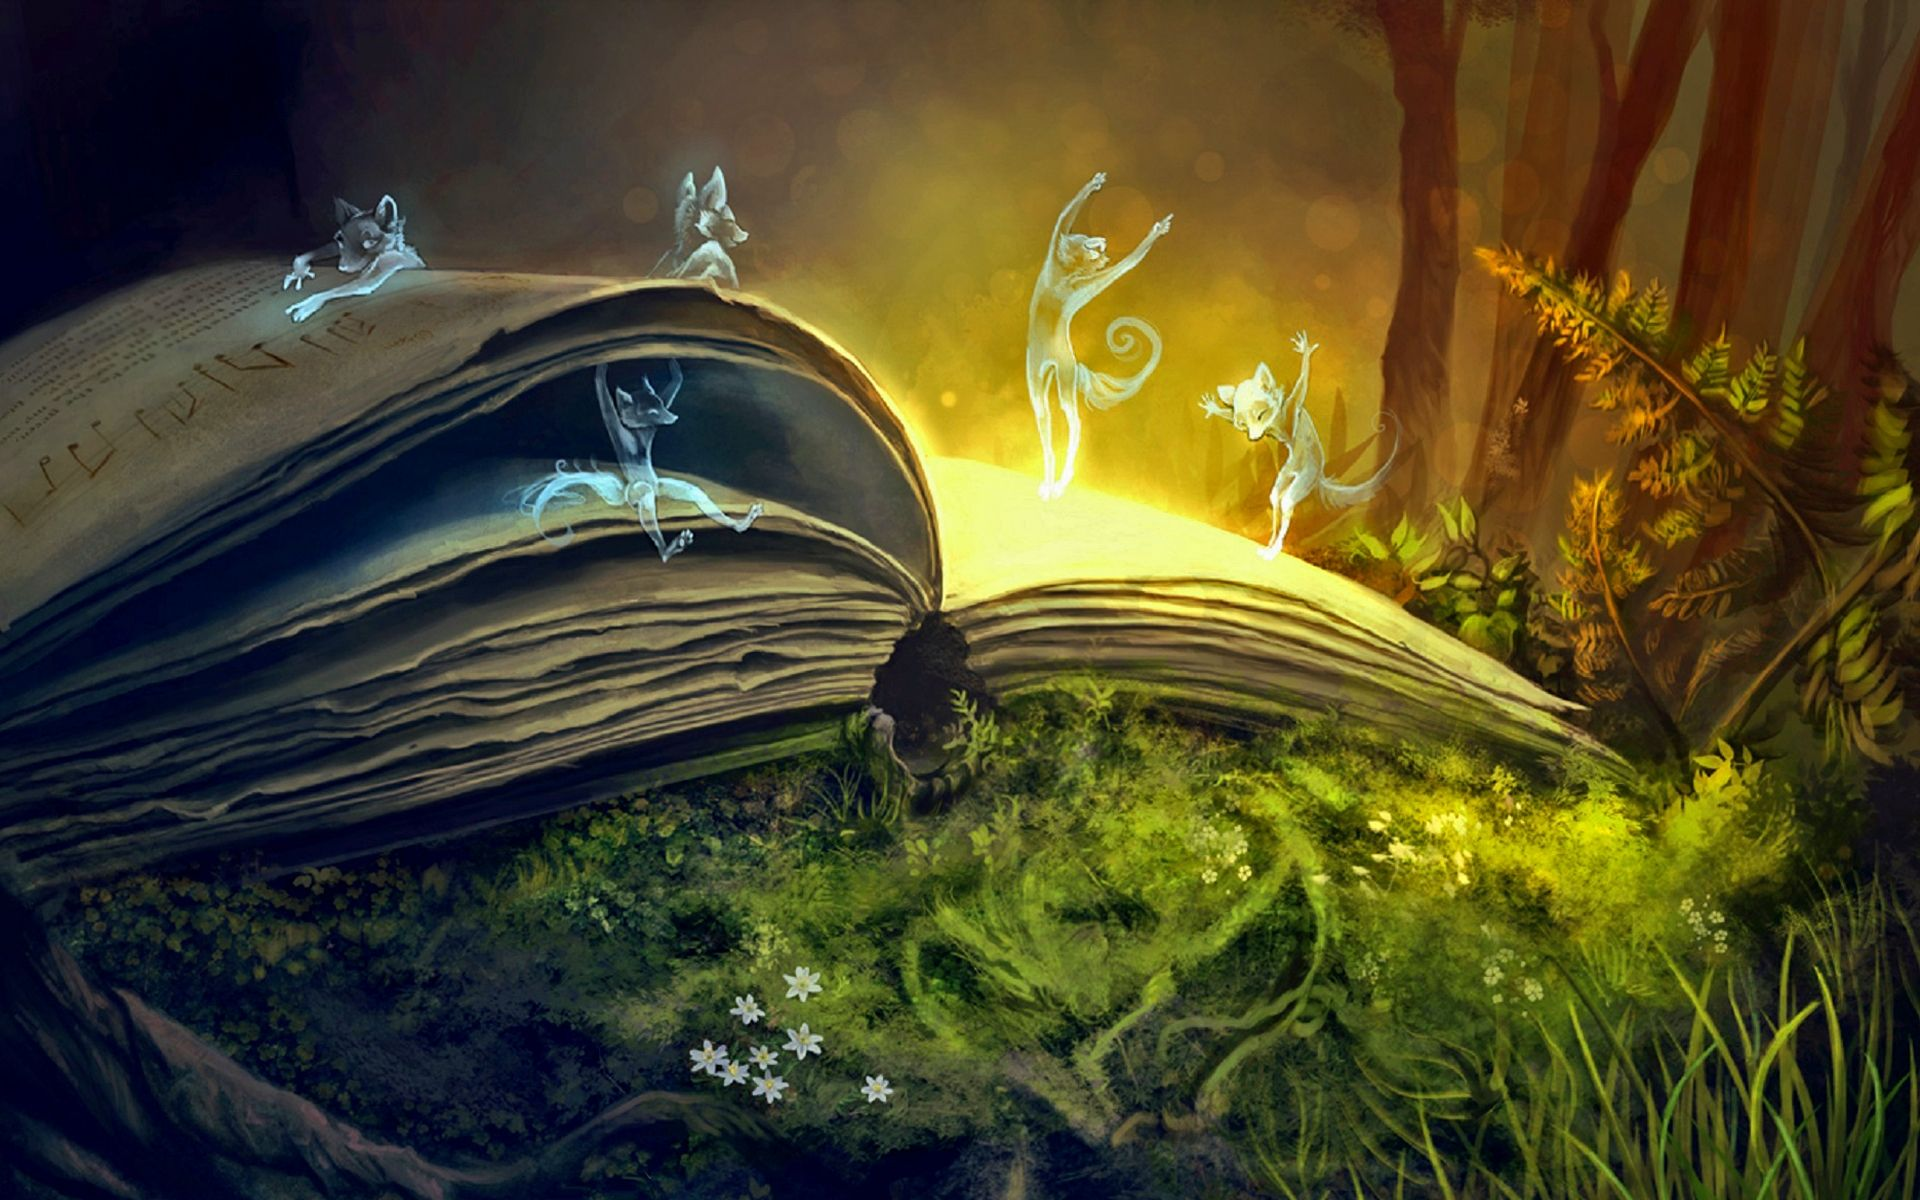 Fantasy art books magic alchemy witchcraft 1920x1440 for Book wallpaper